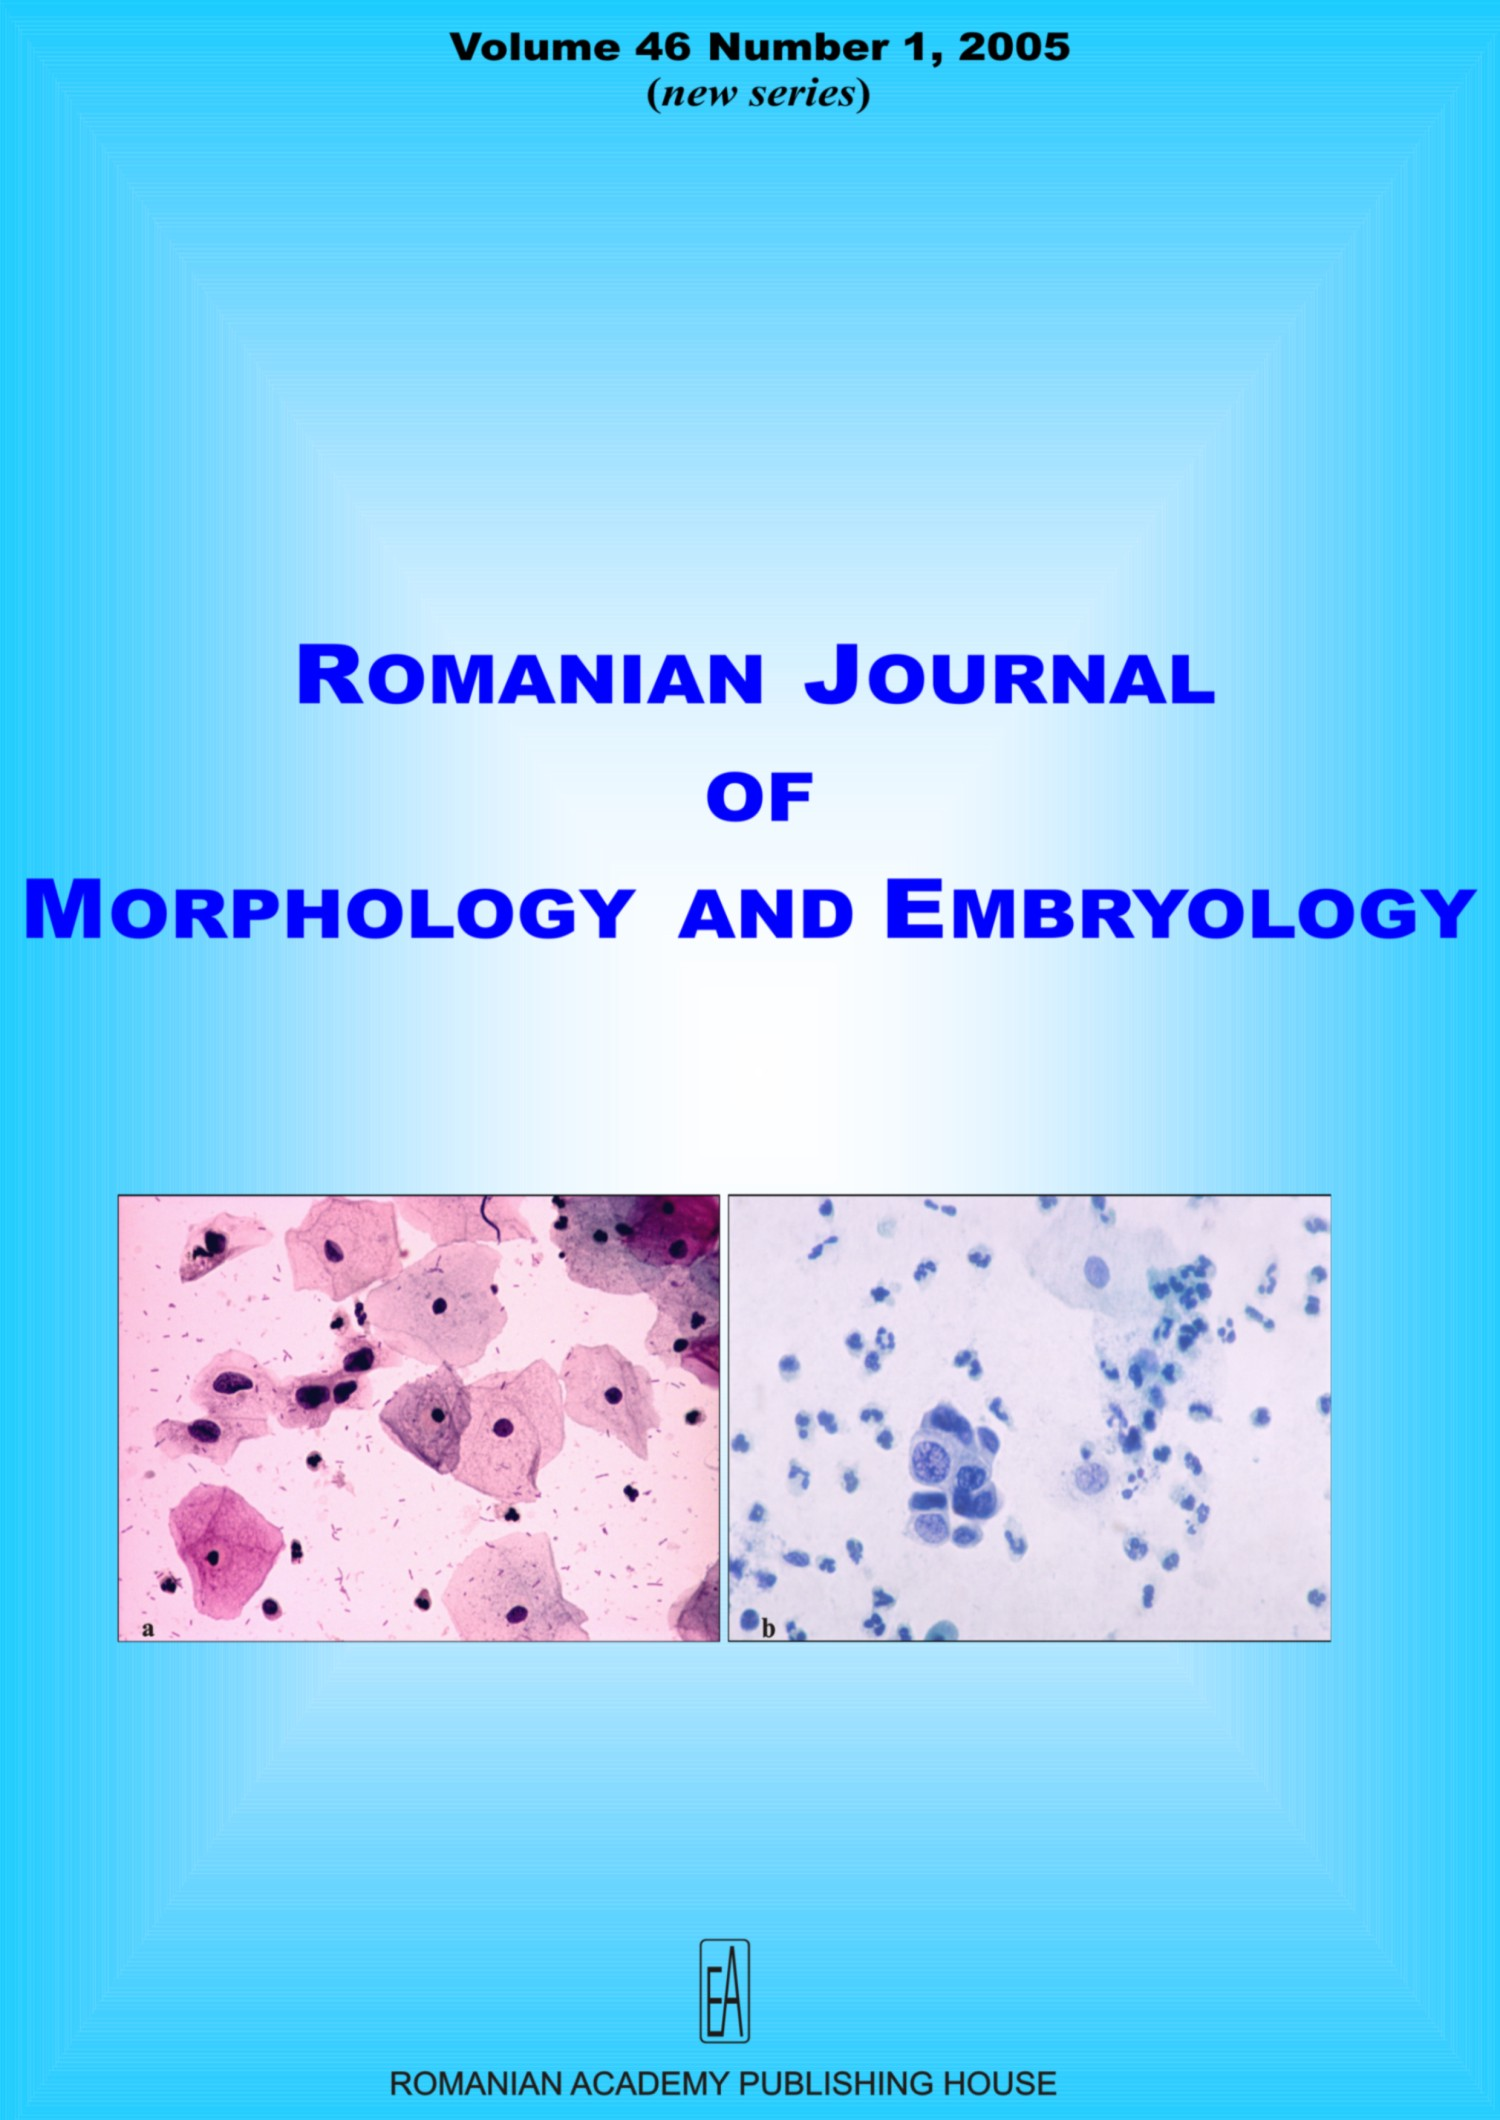 Romanian Journal of Morphology and Embryology, vol. 46 no. 1, 2005